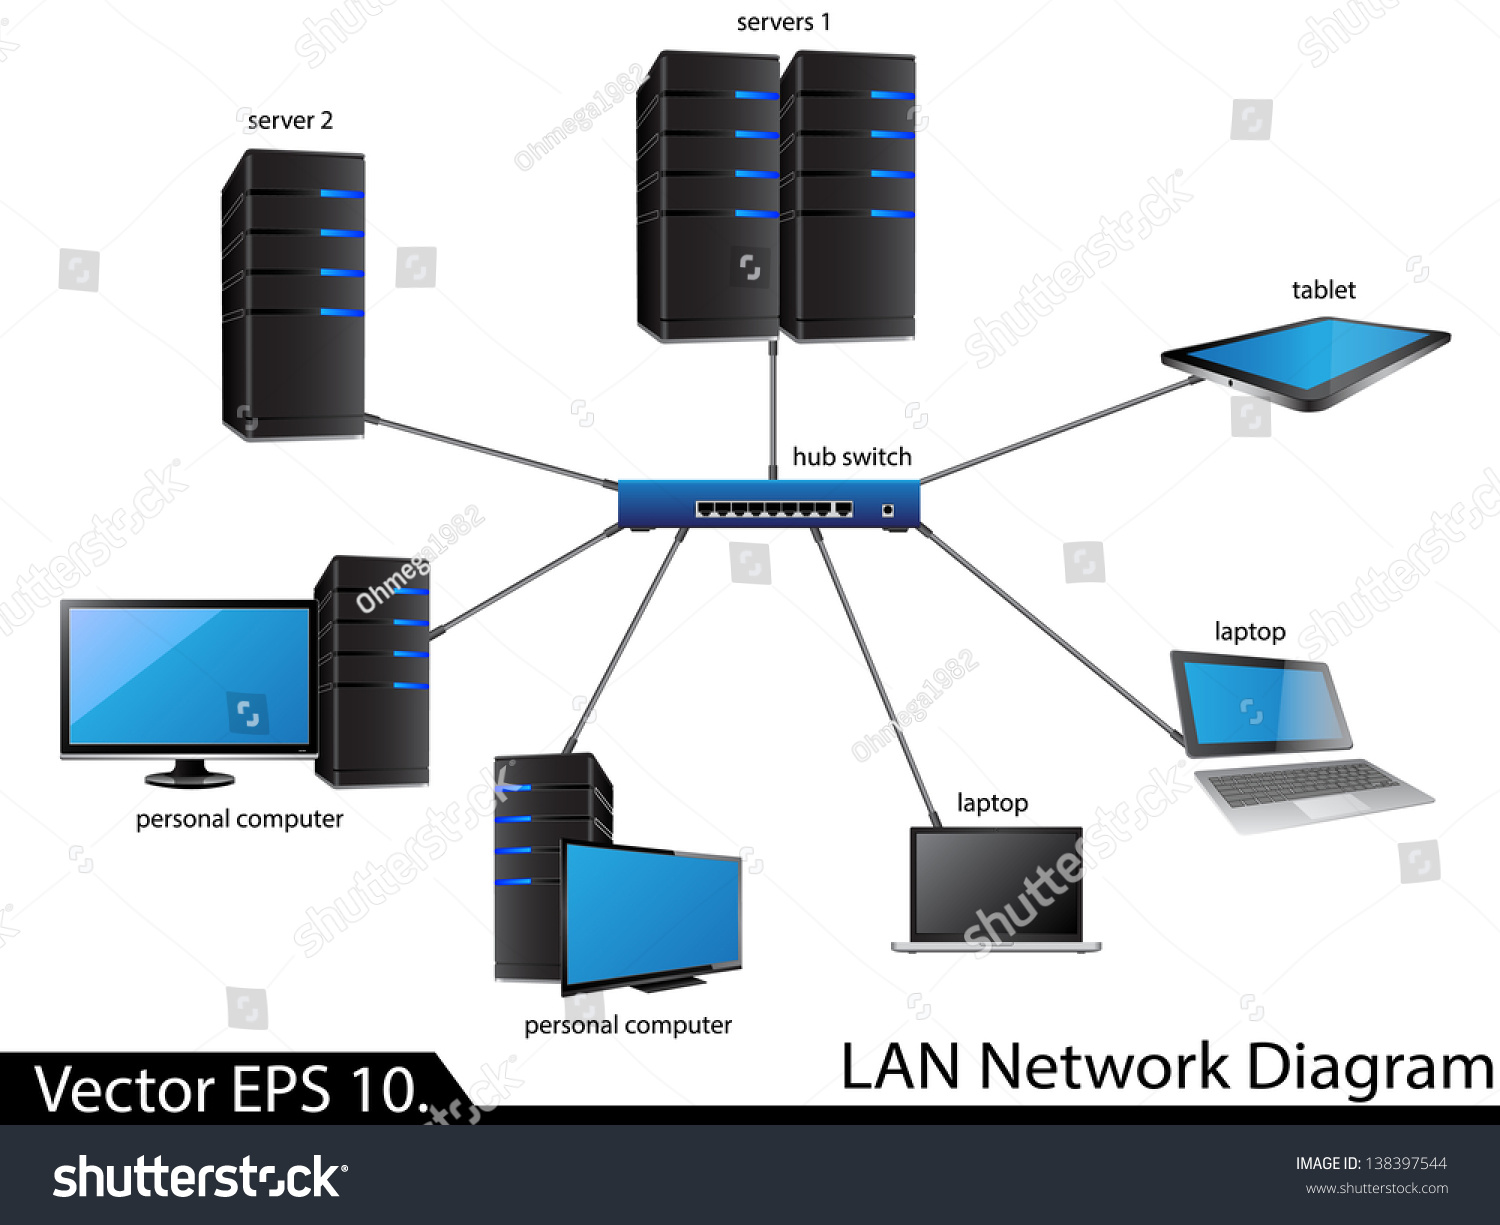 hight resolution of lan network diagram vector illustrator eps 10 for business and technology concept